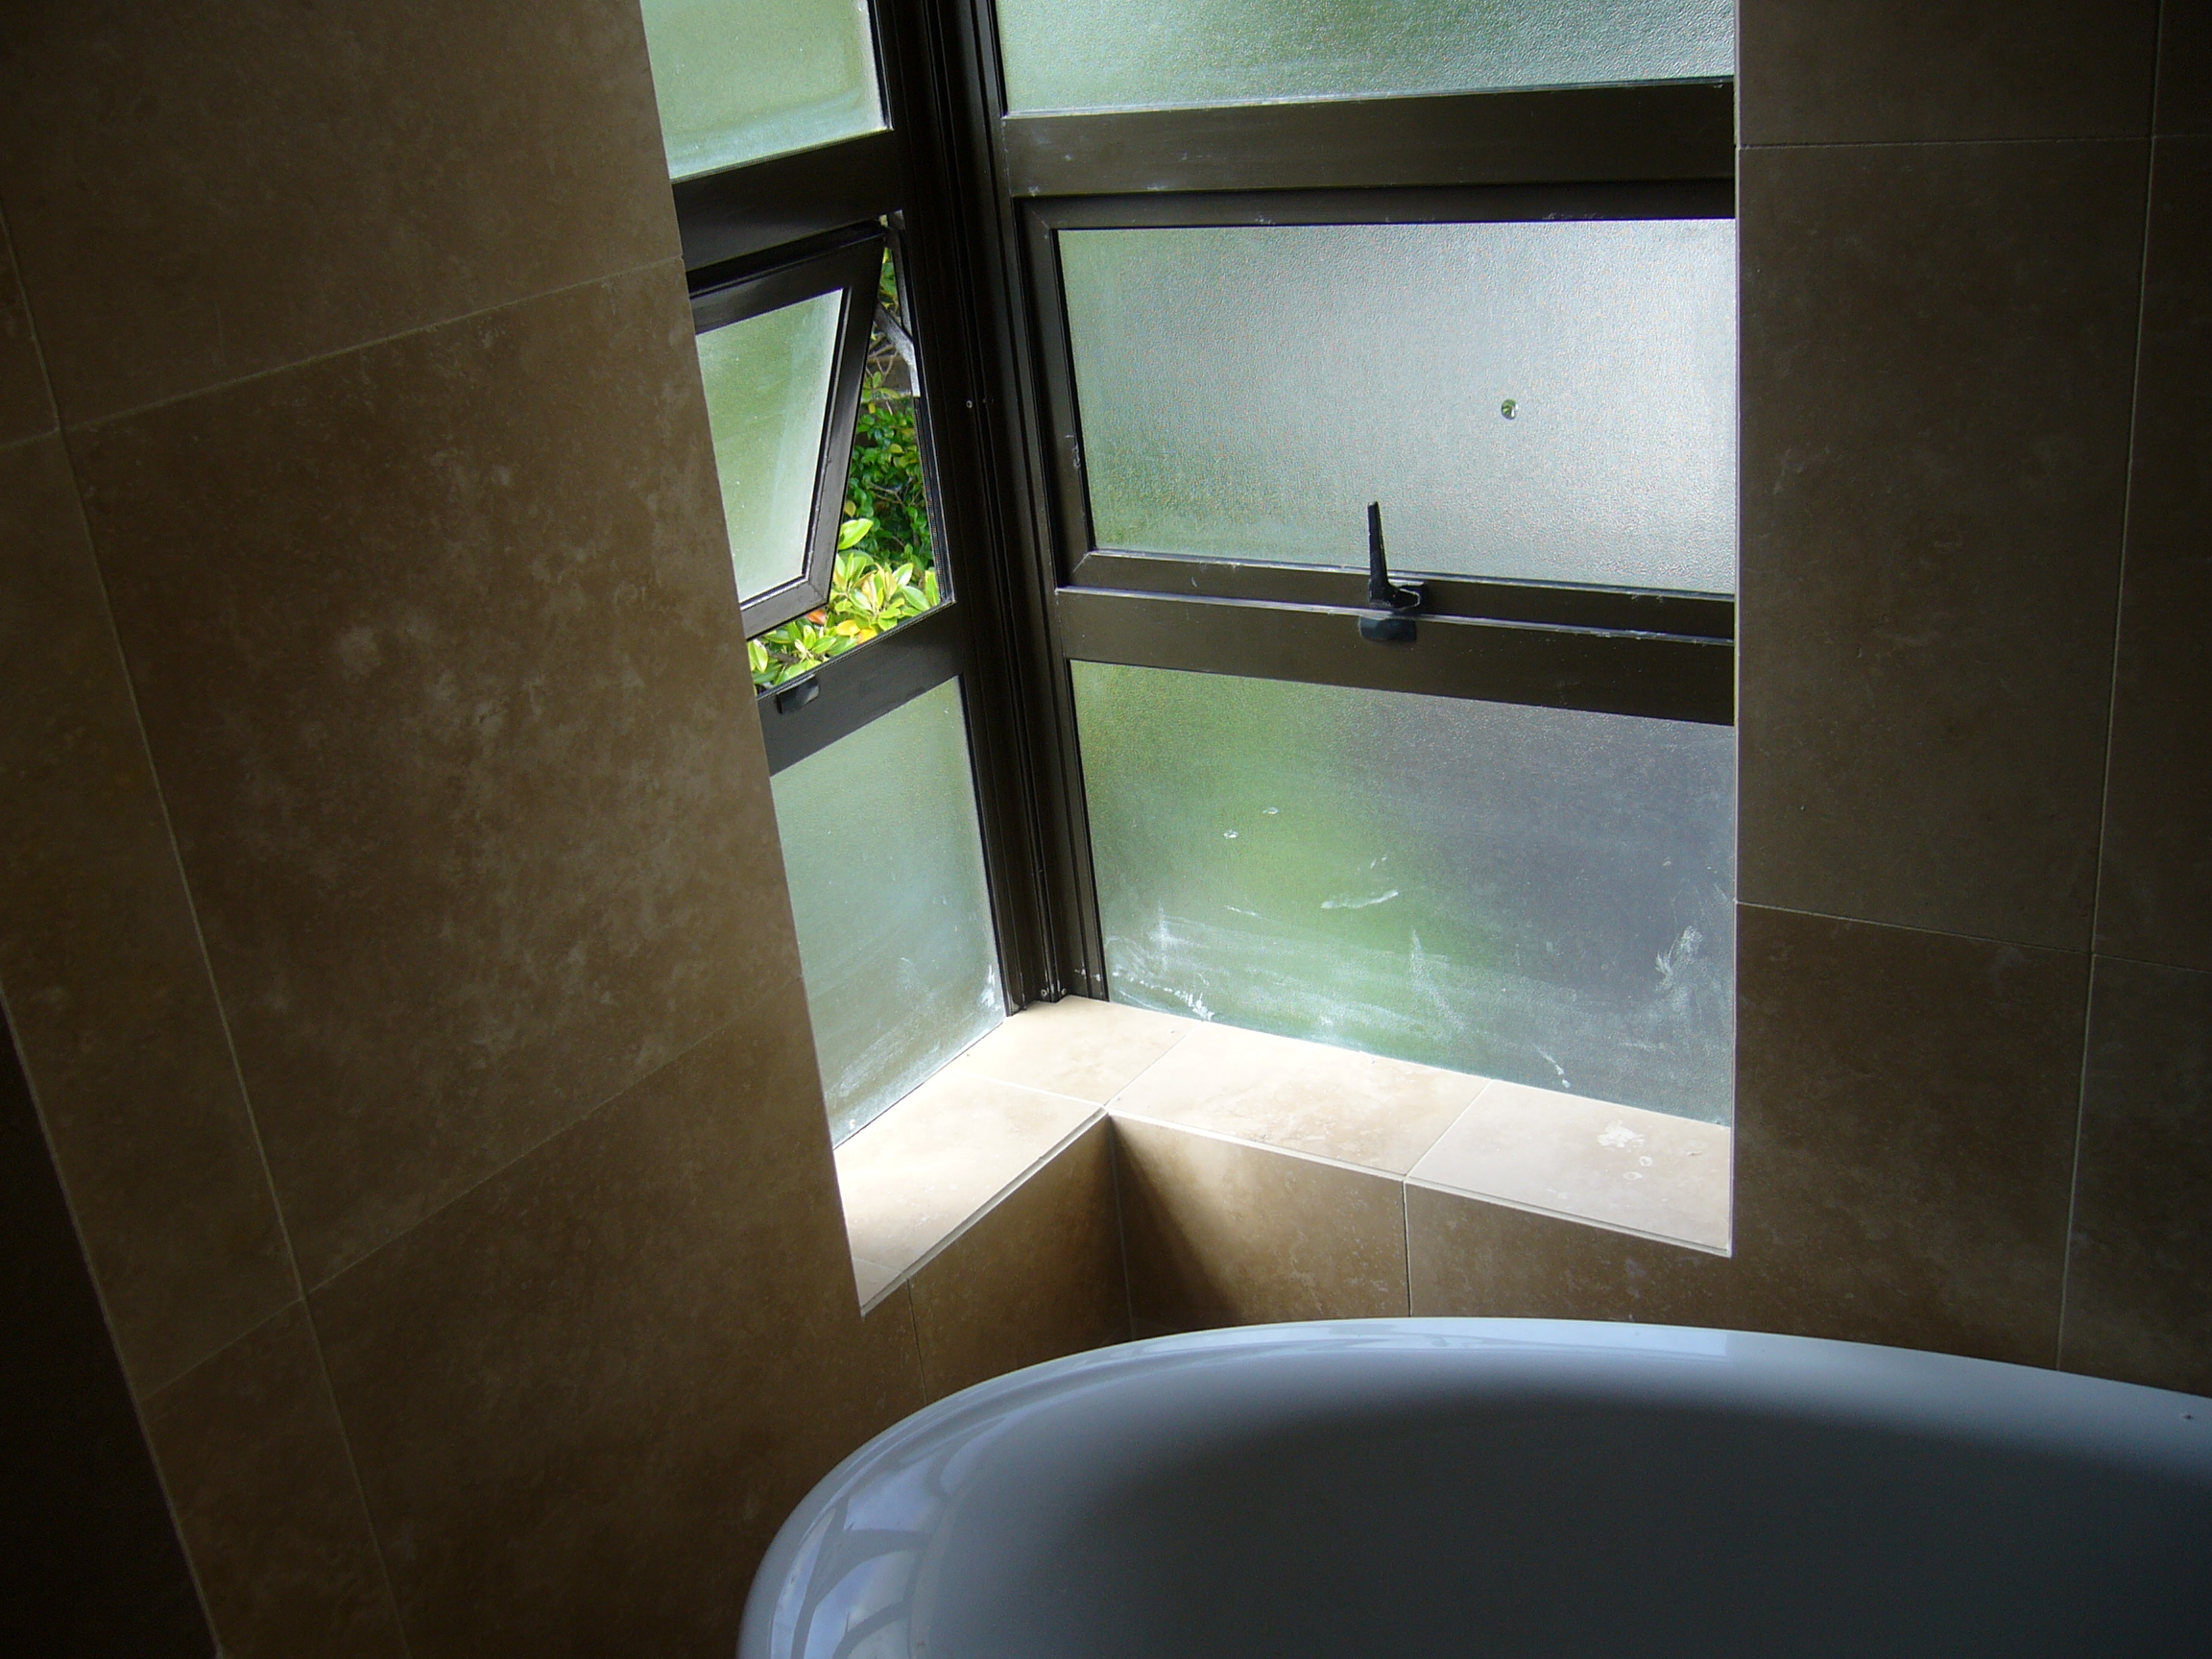 2natural-stone-Remuera-bathroom11